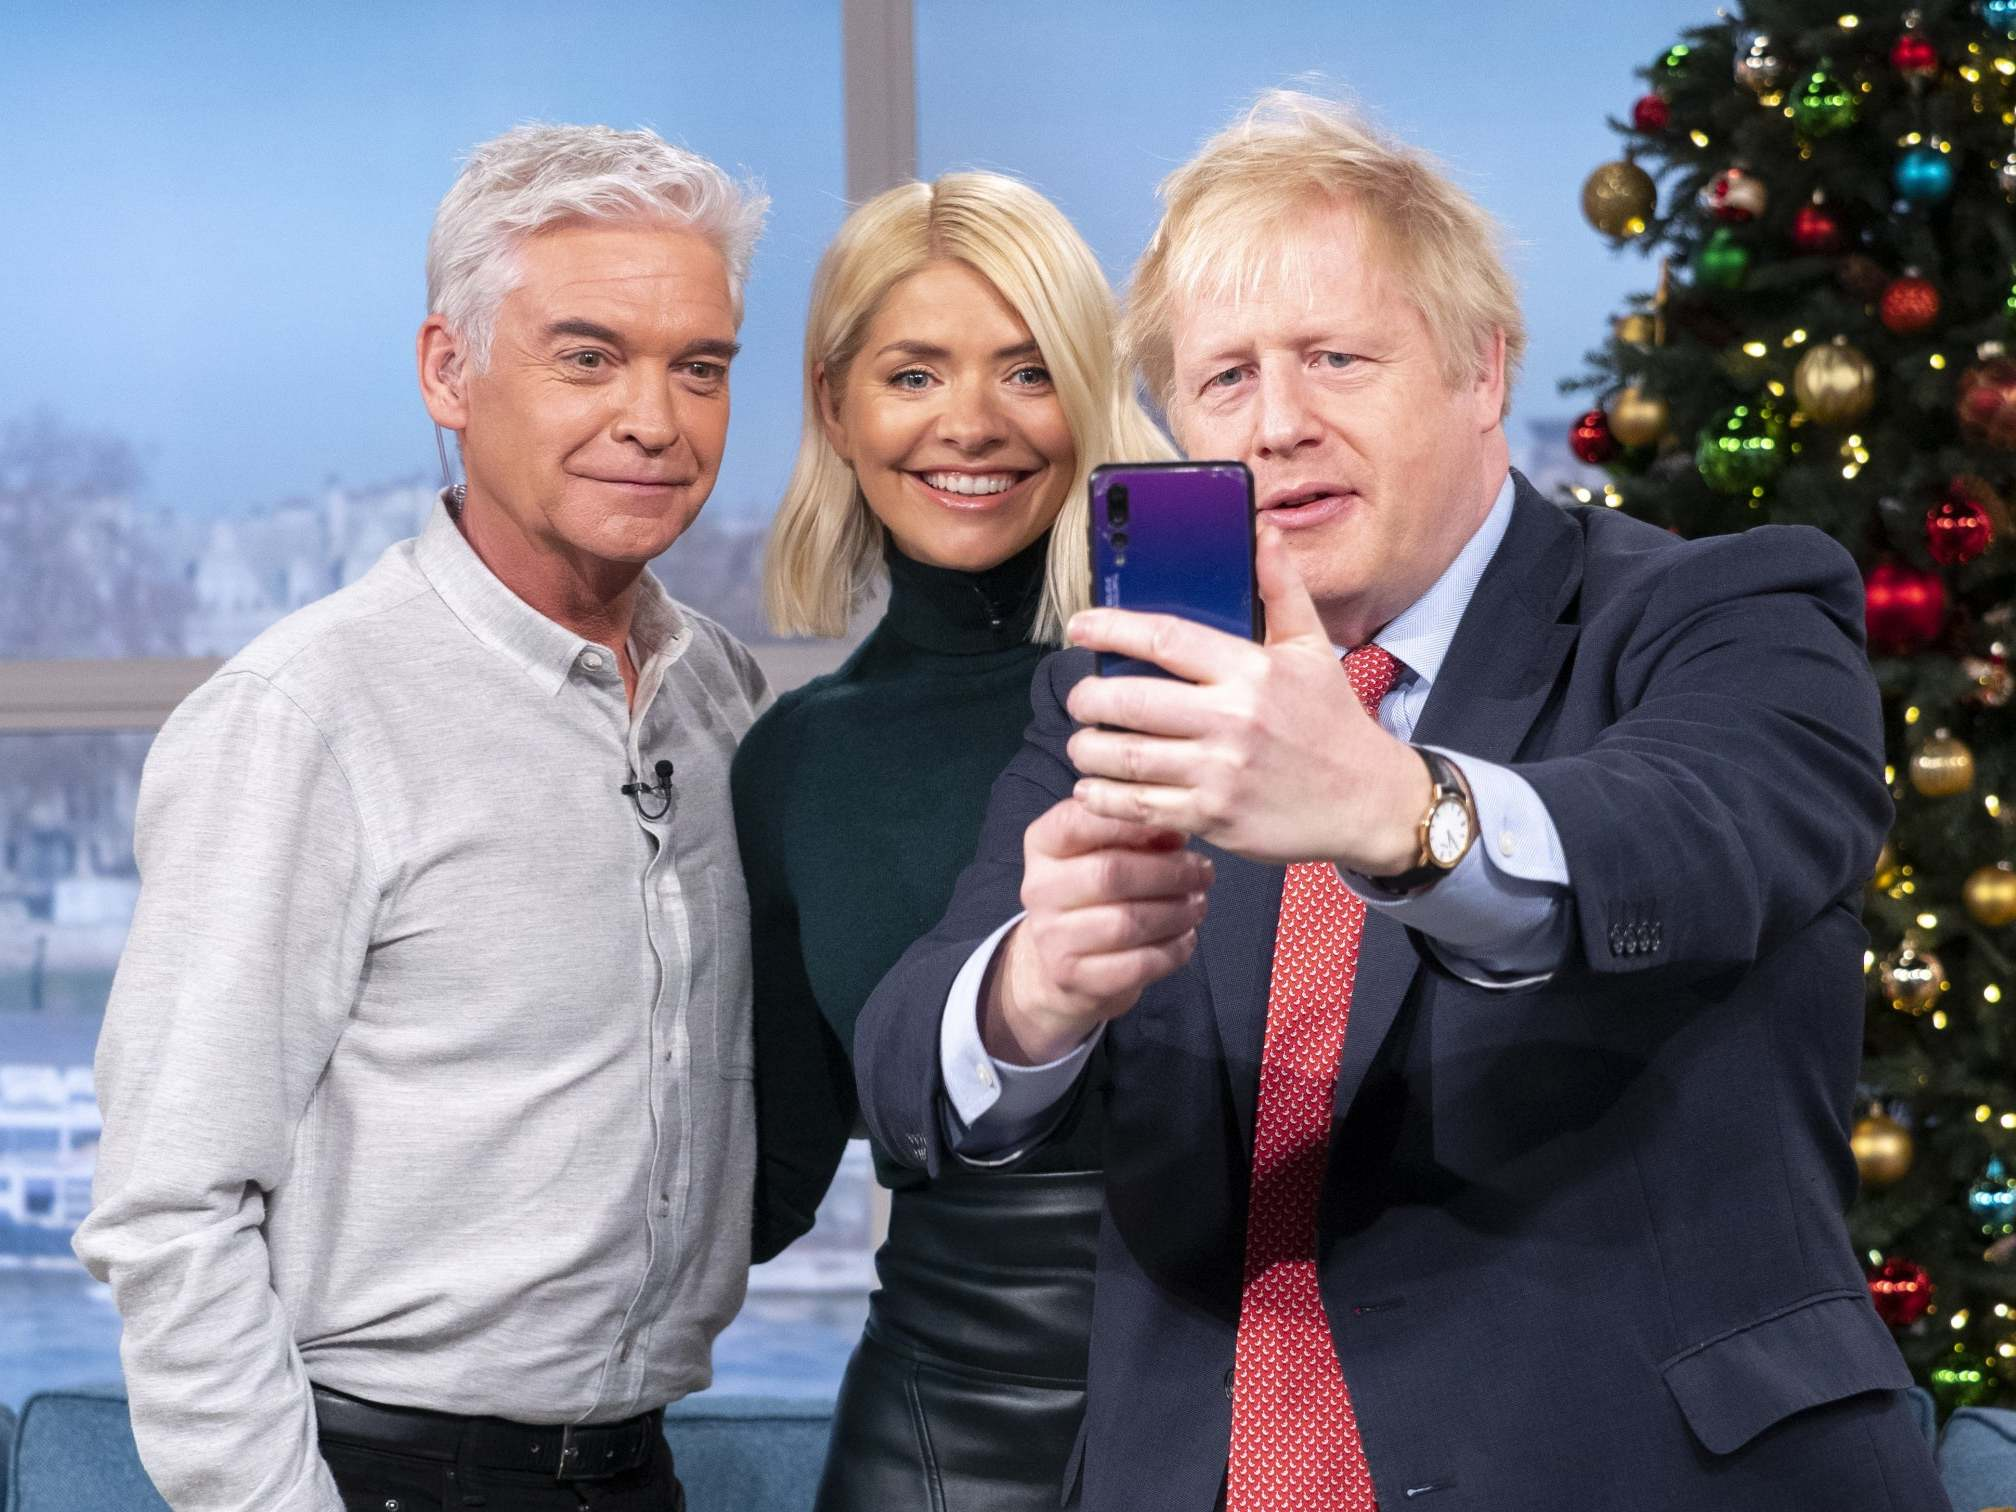 Boris Johnson sparks national security fears after being spotted using Huawei phone